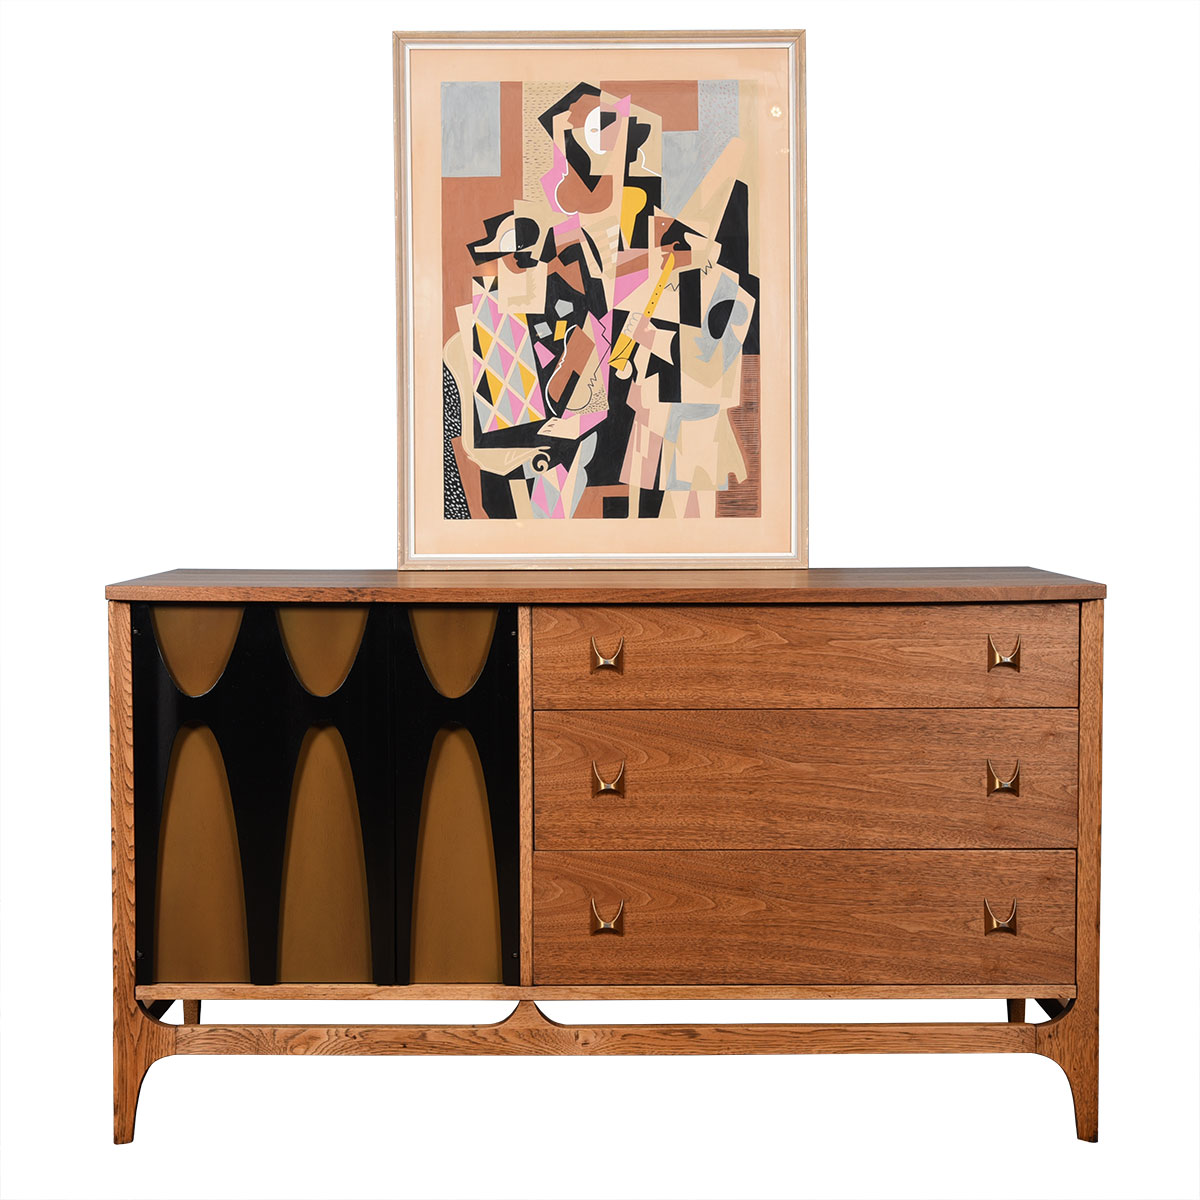 Cubist Mid-century Original Painting in the Style of Picasso